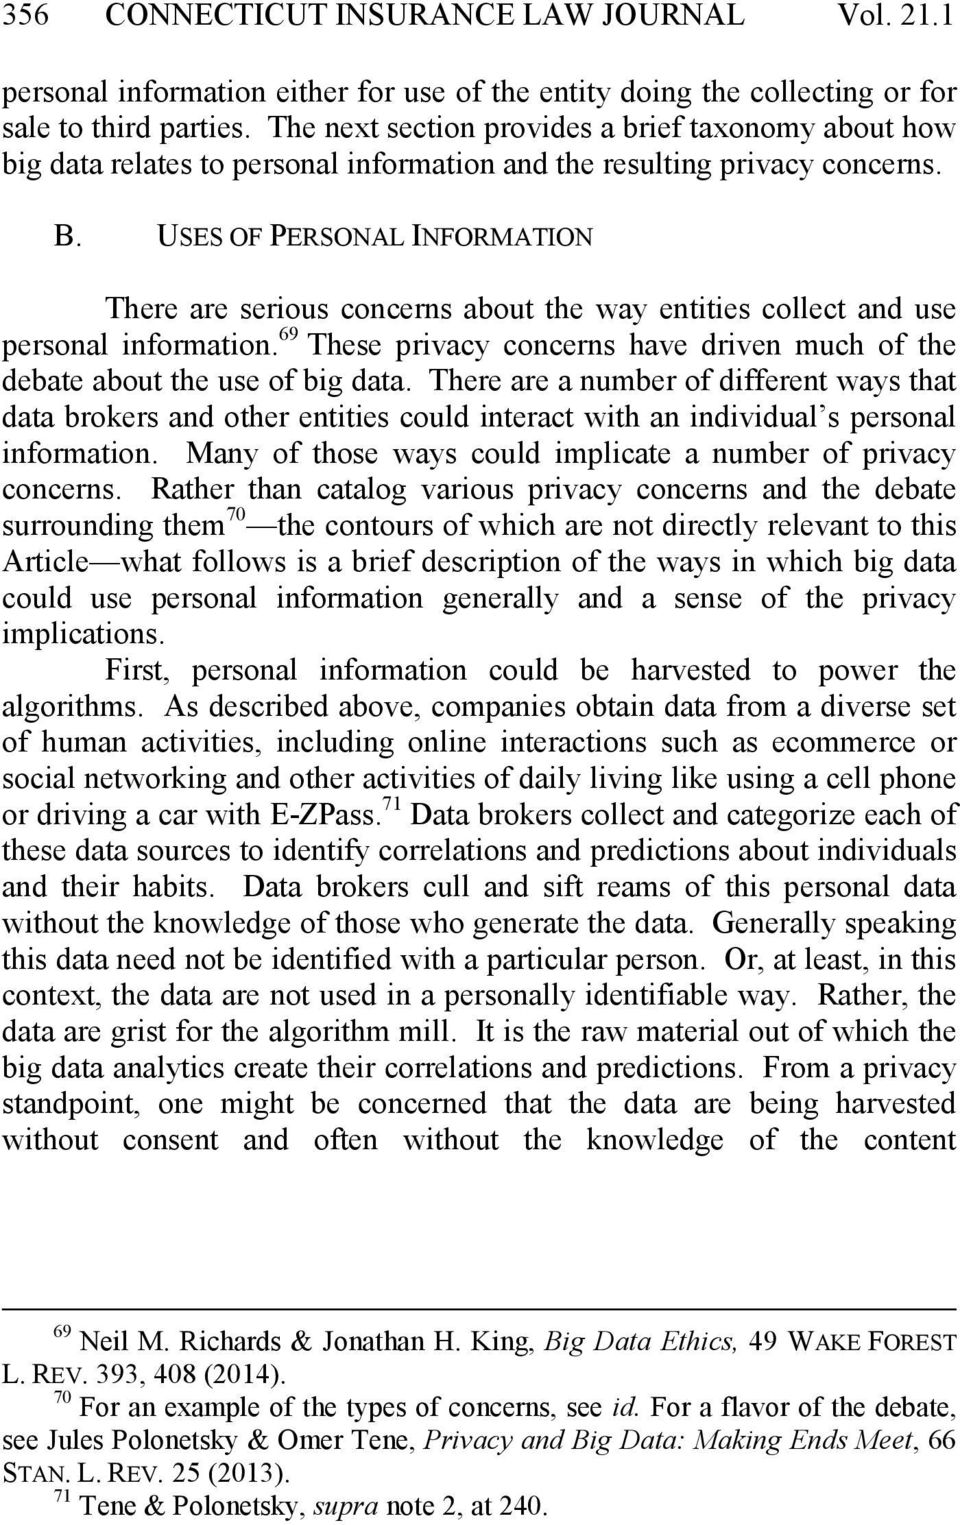 USES OF PERSONAL INFORMATION There are serious concerns about the way entities collect and use personal information. 69 These privacy concerns have driven much of the debate about the use of big data.